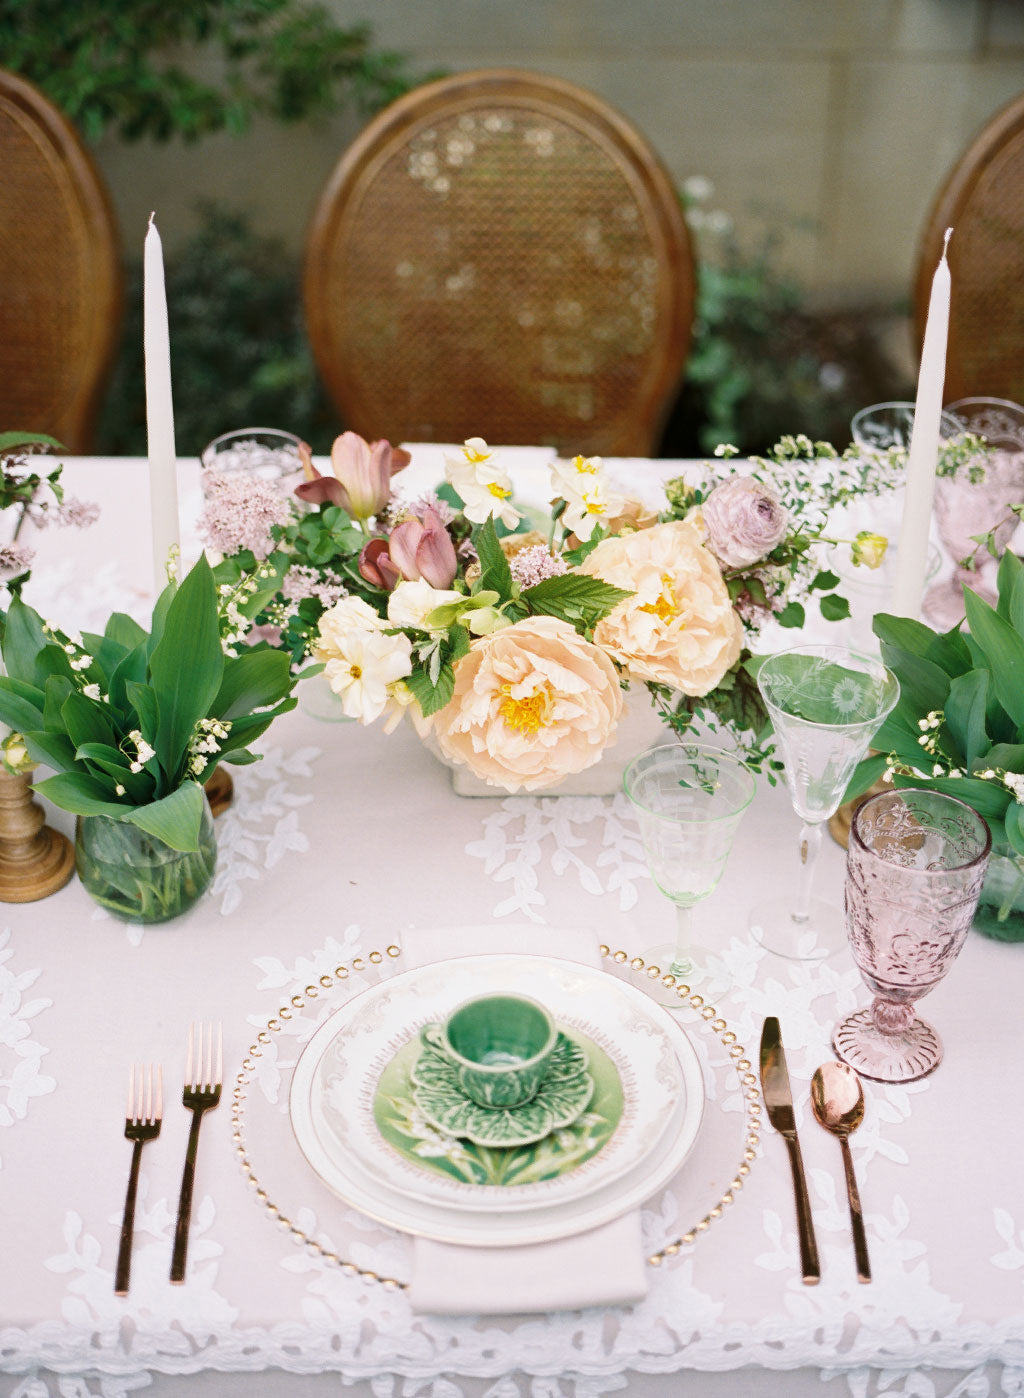 Wedding place setting with wedding flowers